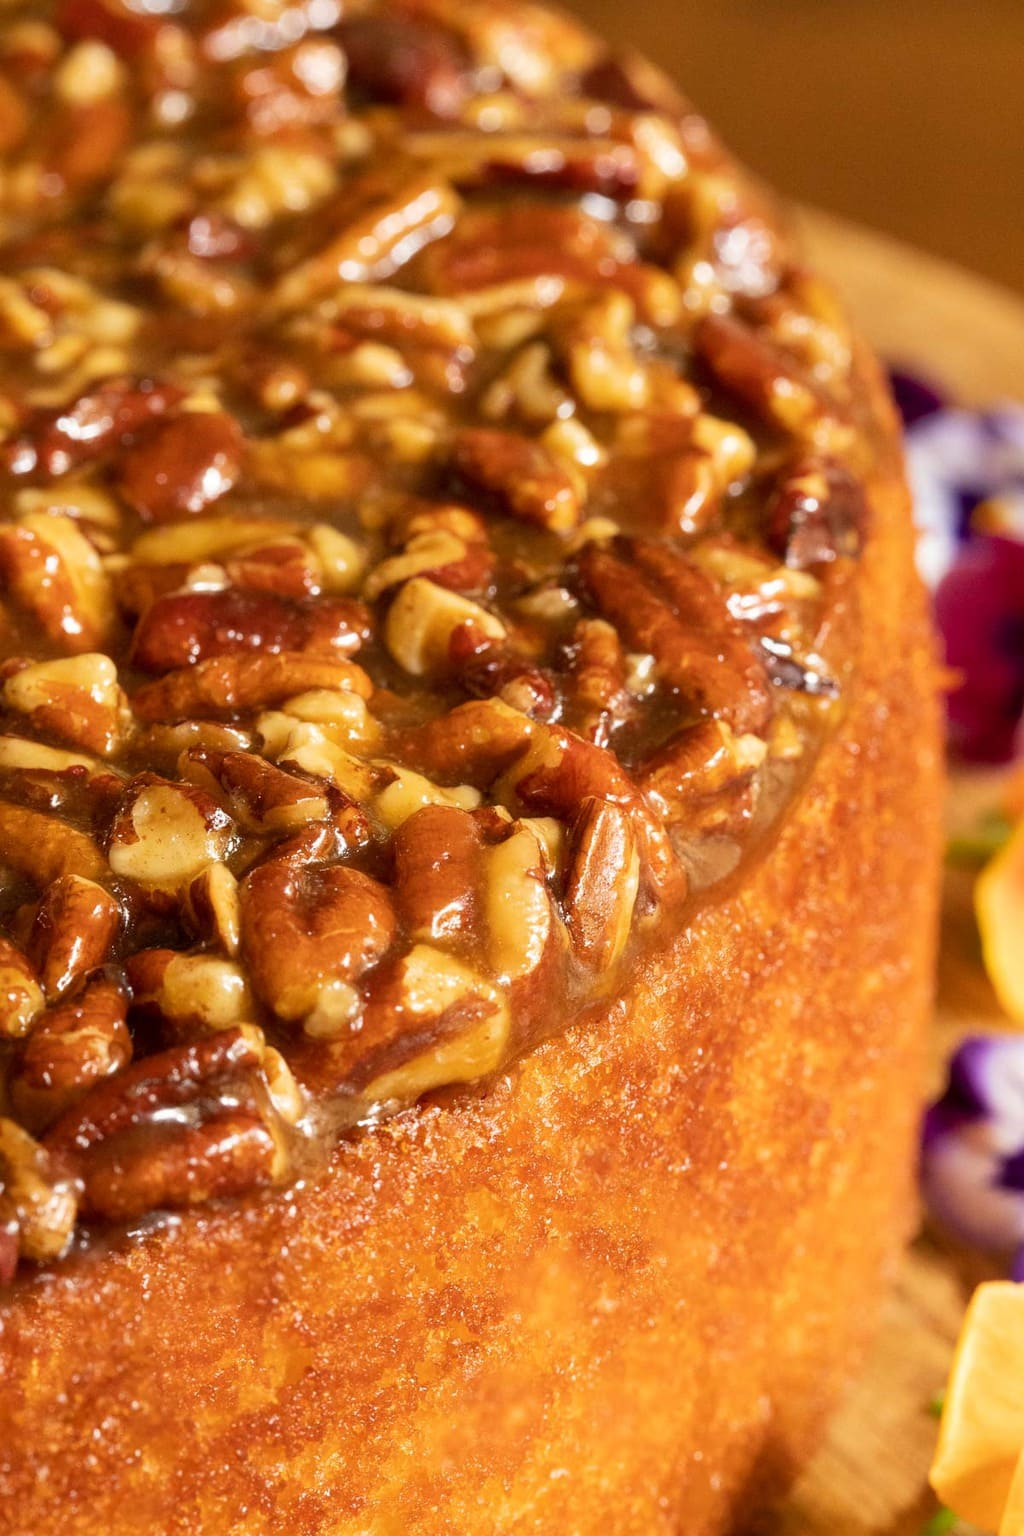 Vertical extreme closeup photo of the top and side of a Ridiculously Easy Caramel Pecan Buttermilk Cake.